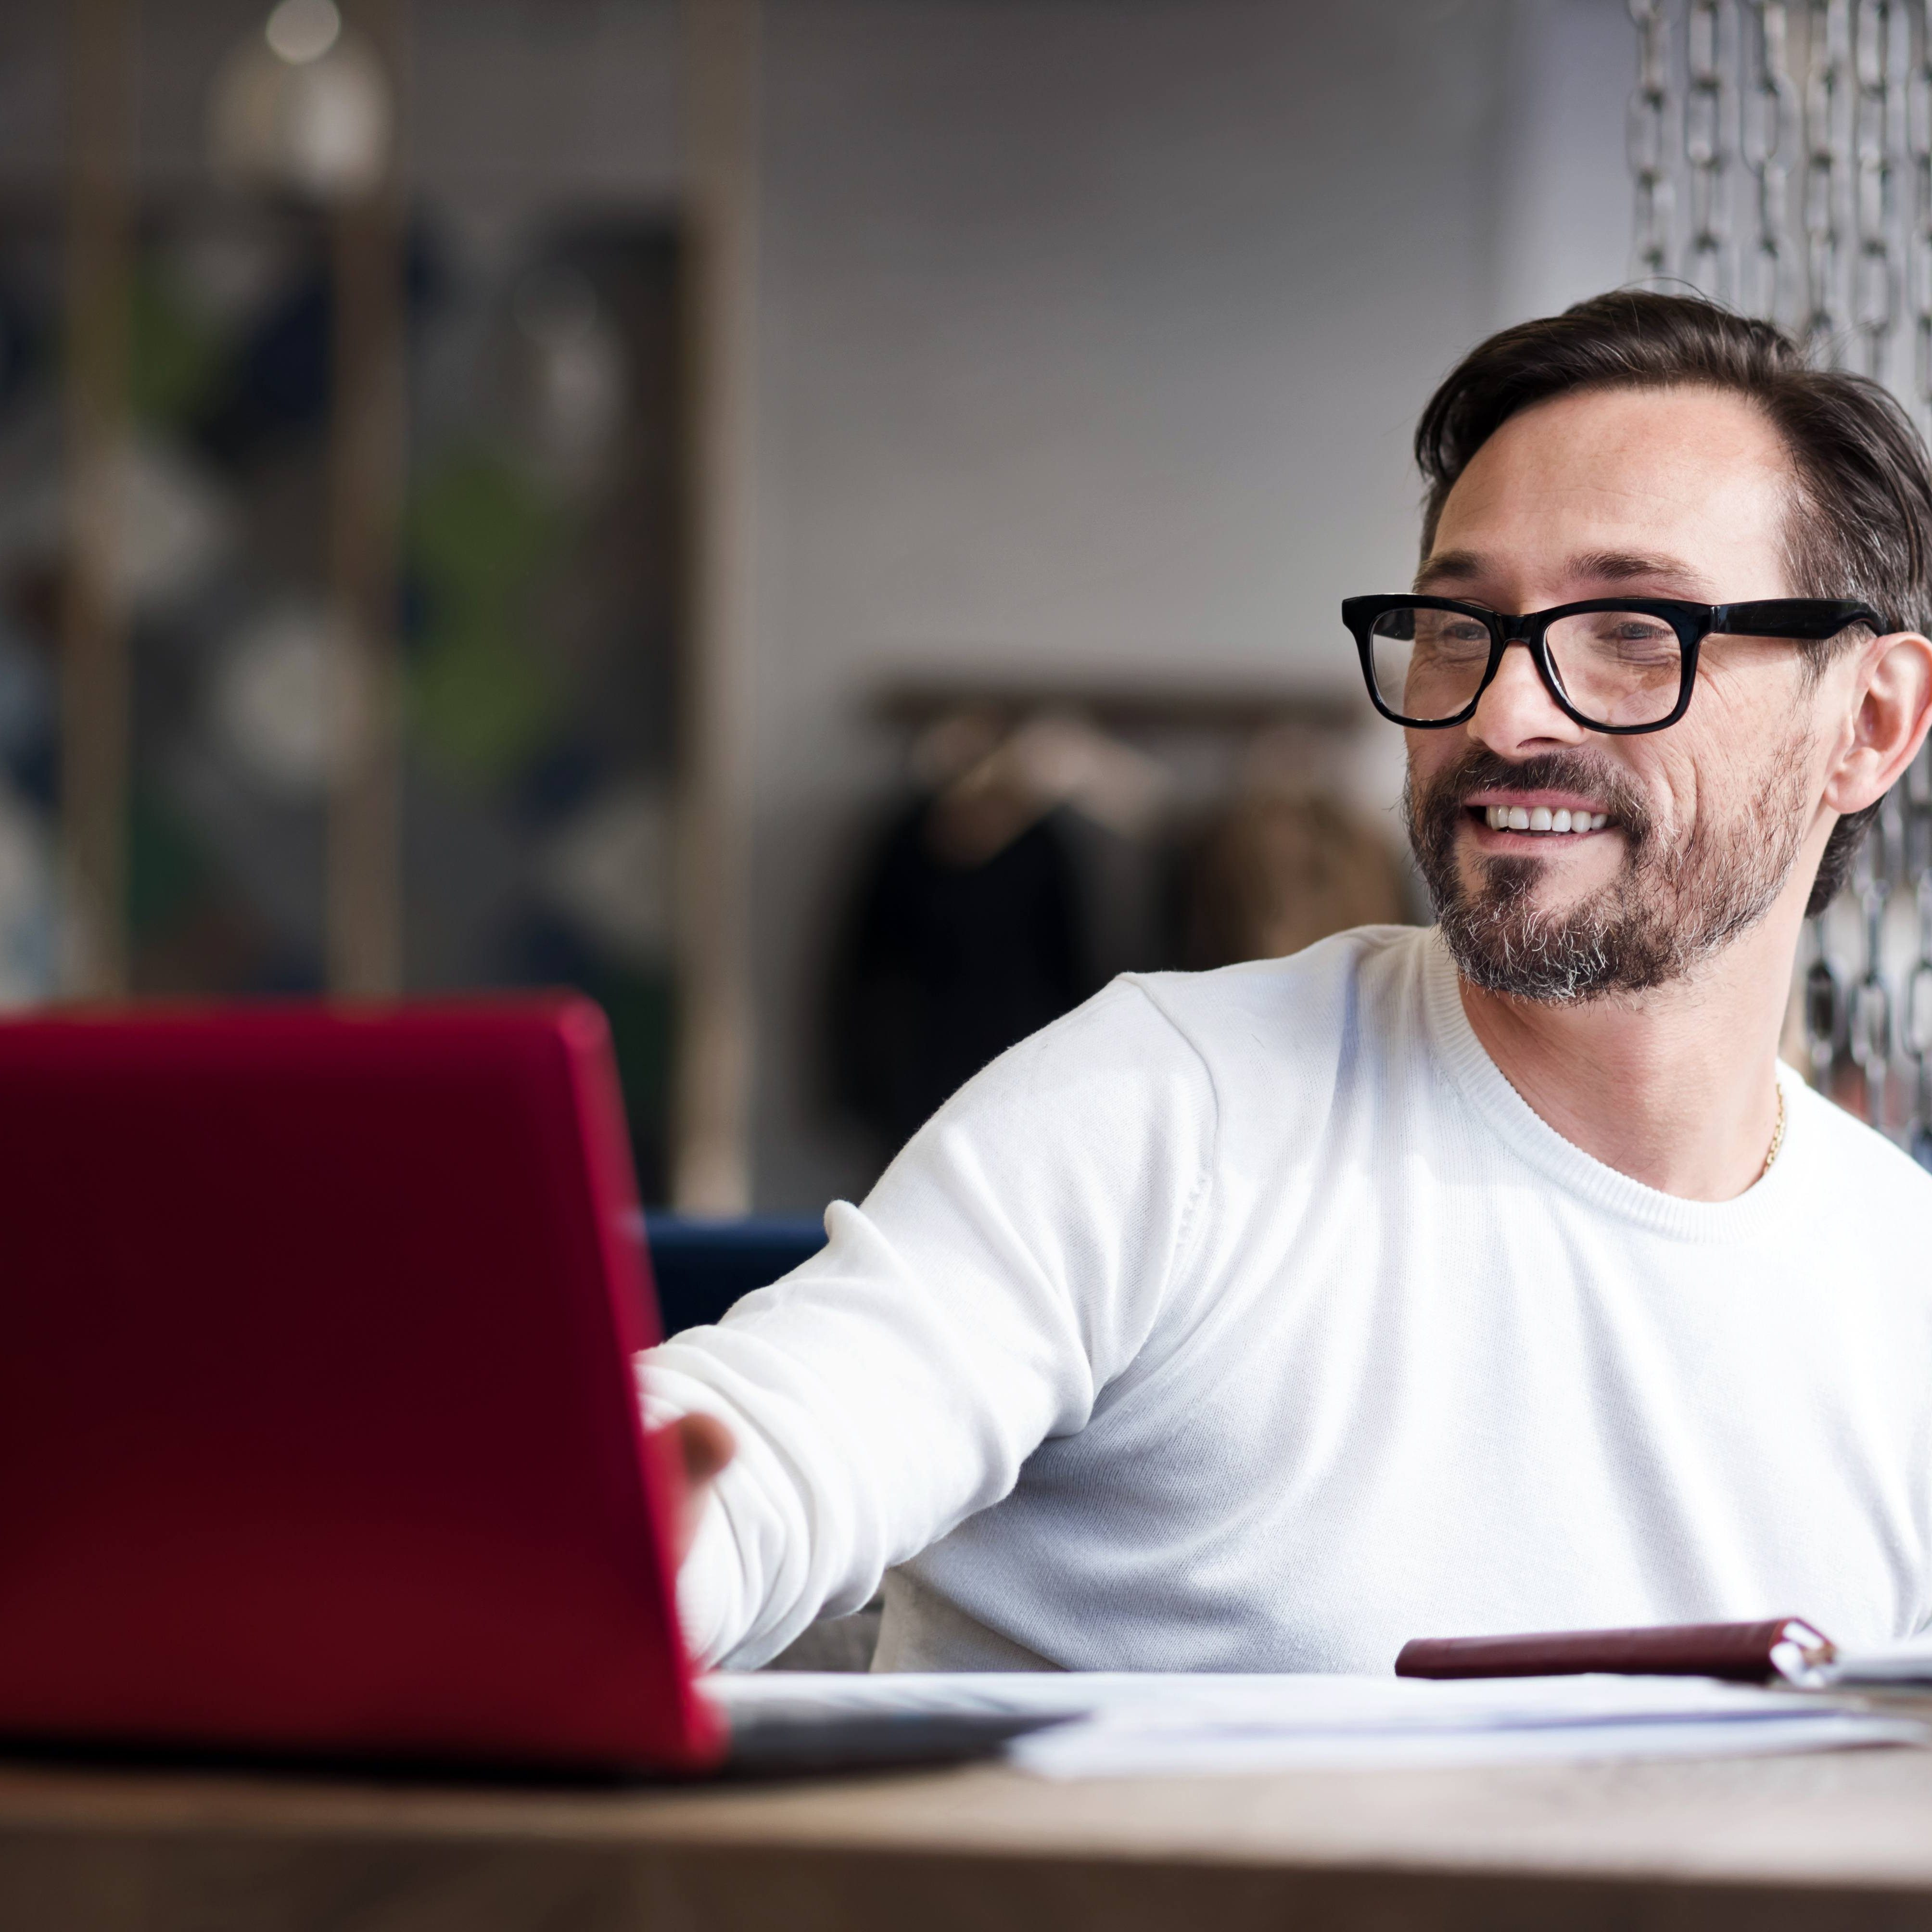 Free wifi. Cheerful bearded man wearing glasses using laptop while sitting in cafe.